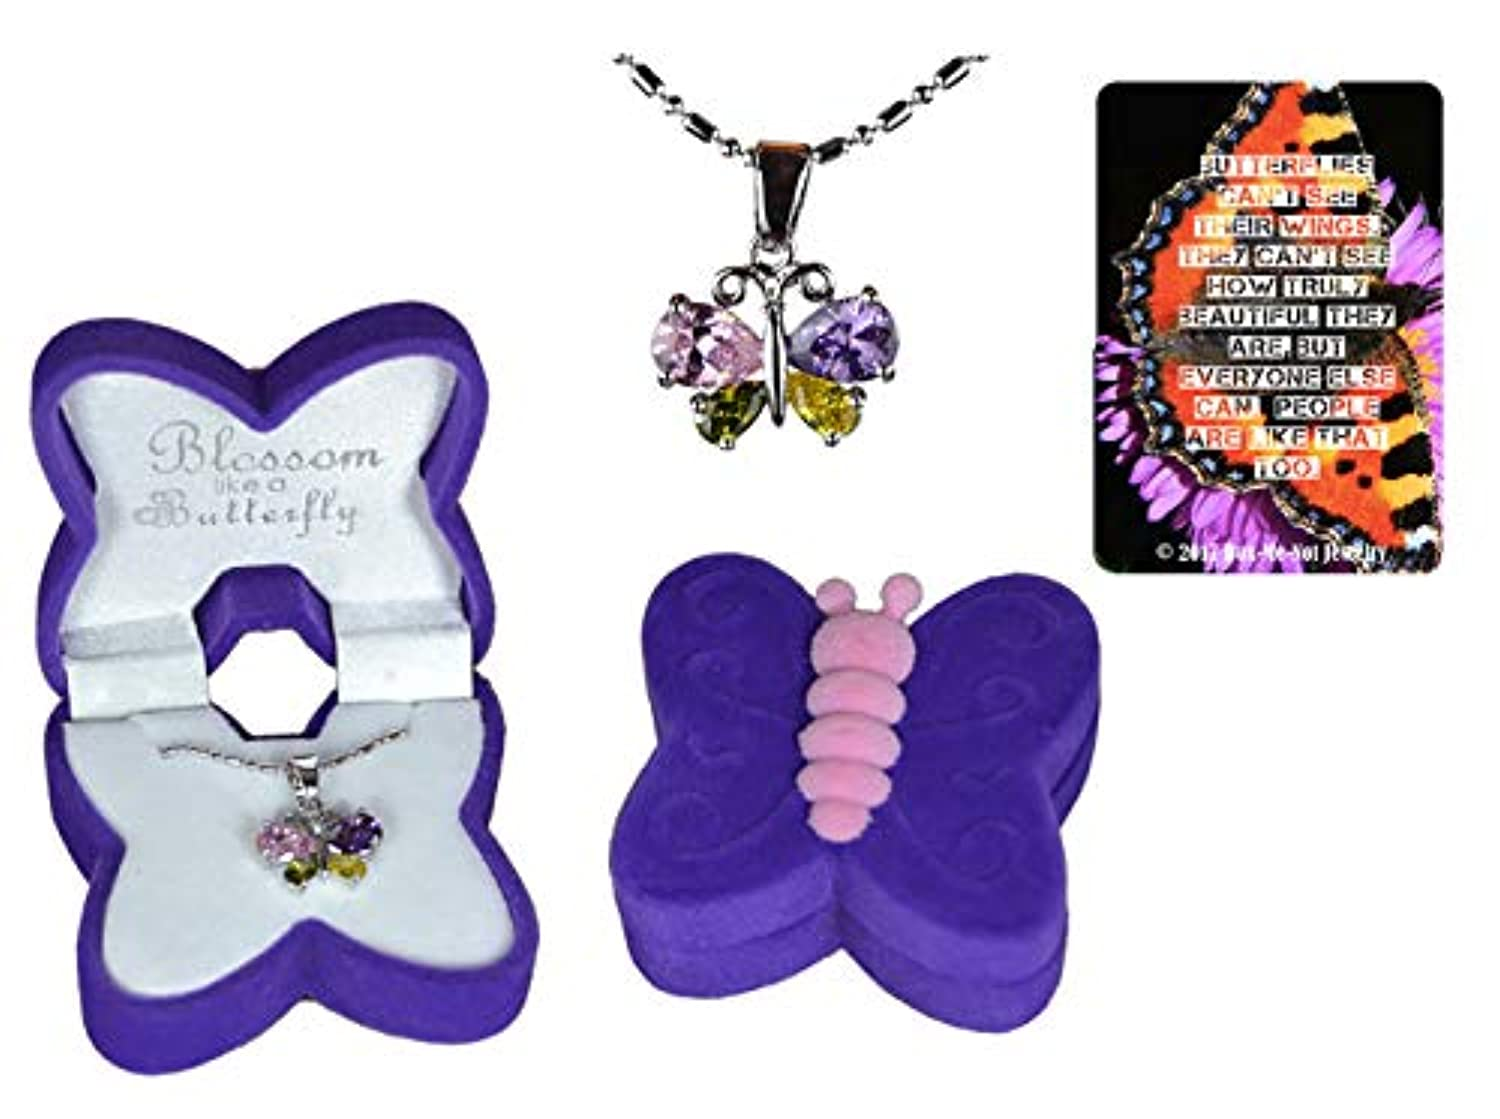 Girl's cubic zirconia crystal white gold-plated butterfly necklace gift set in purple and pink velour butterfly jewellery box with inspirational quote butterfly bookmark